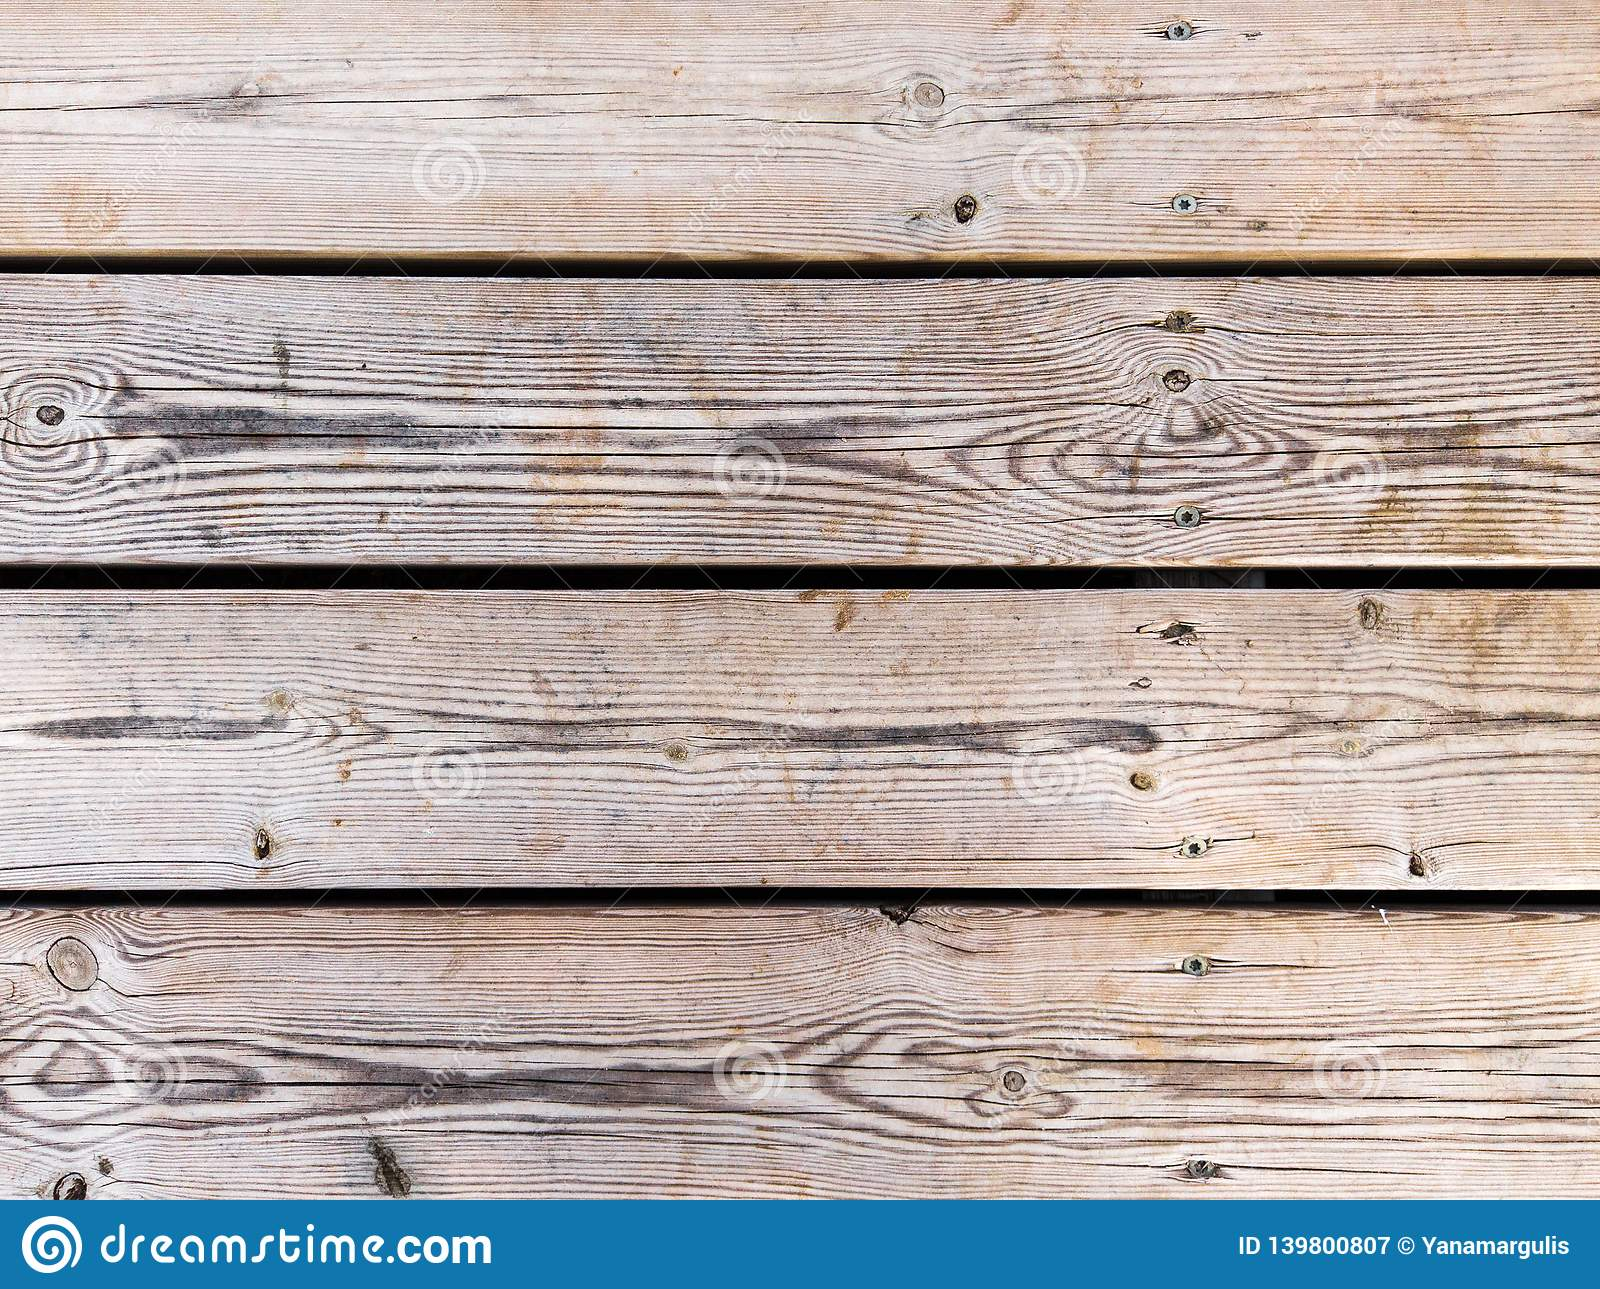 Wooden background from real wooden table